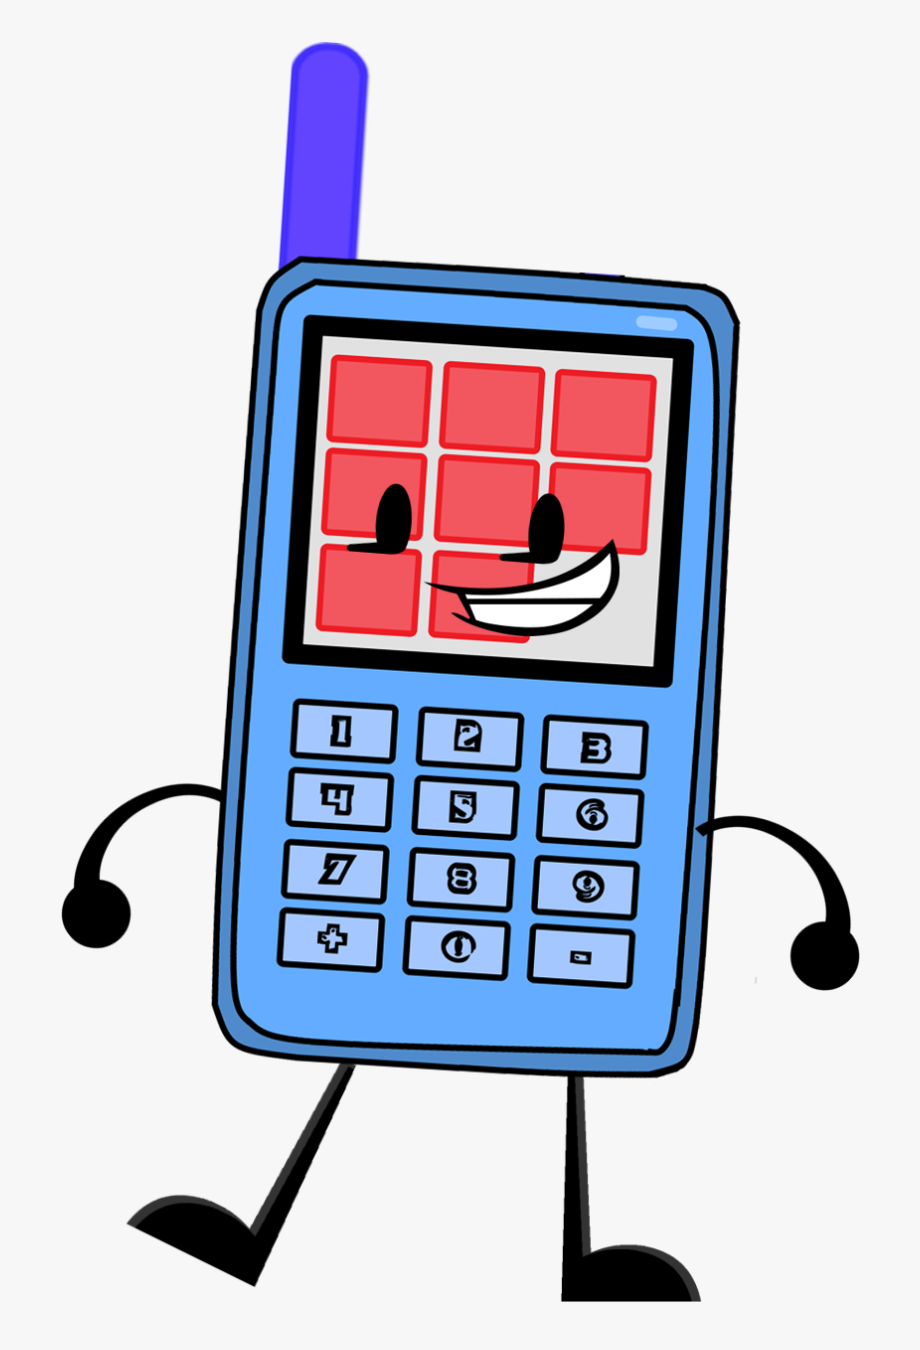 Telephone clipart telephony. Object overload shows